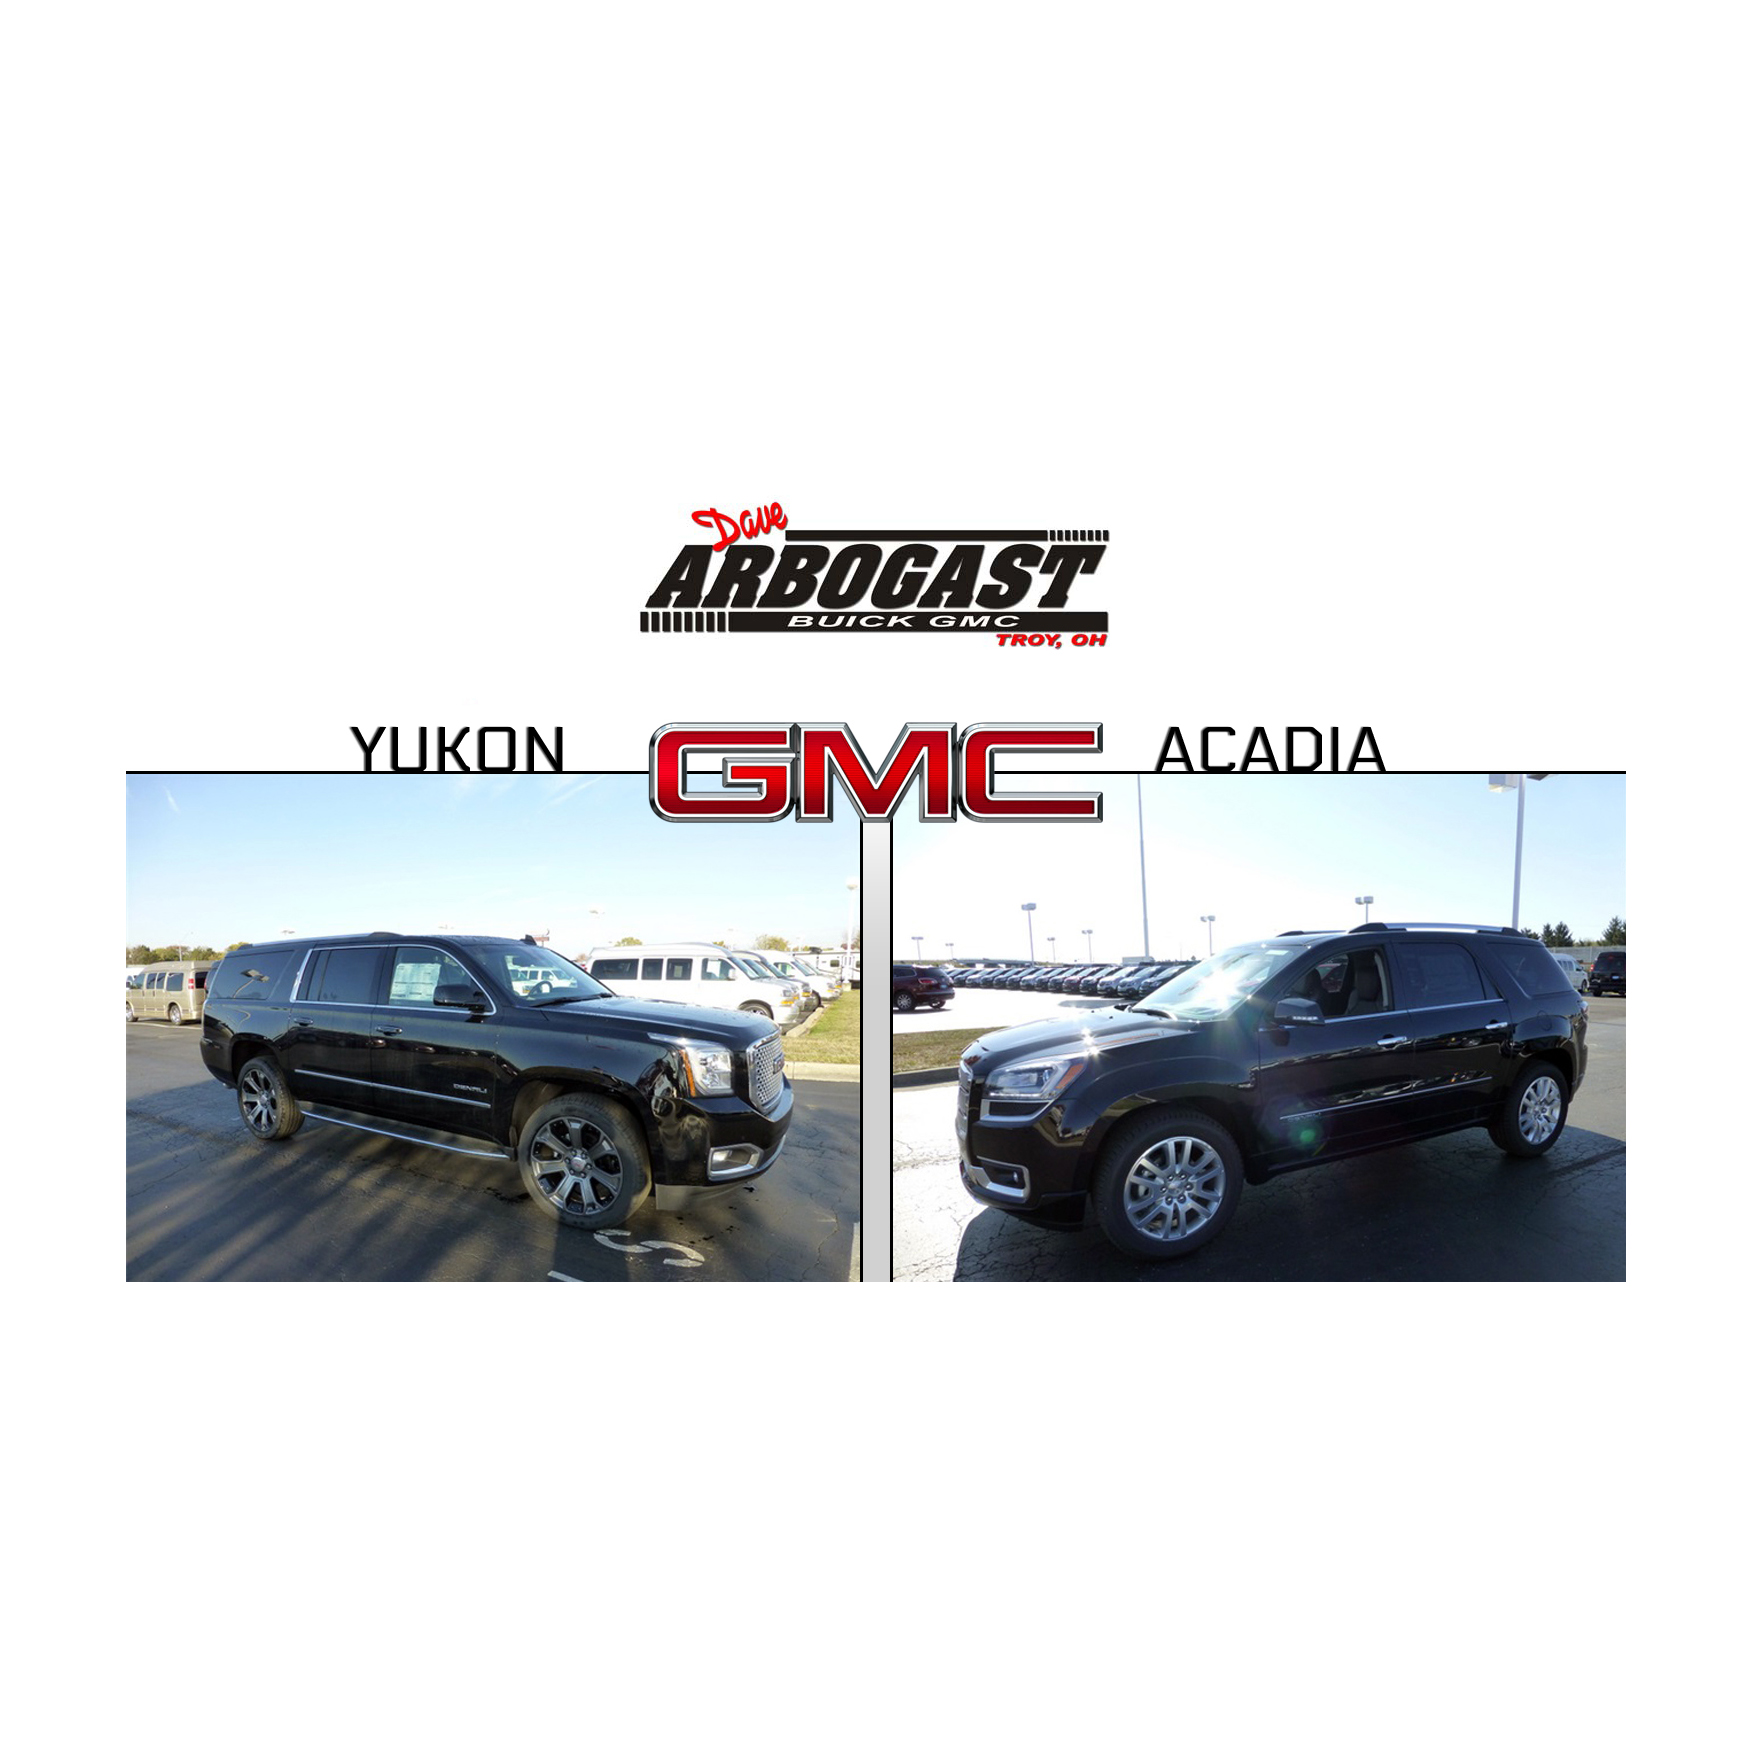 Used Cars Suvs And Trucks For Sale Get Deals At Dave